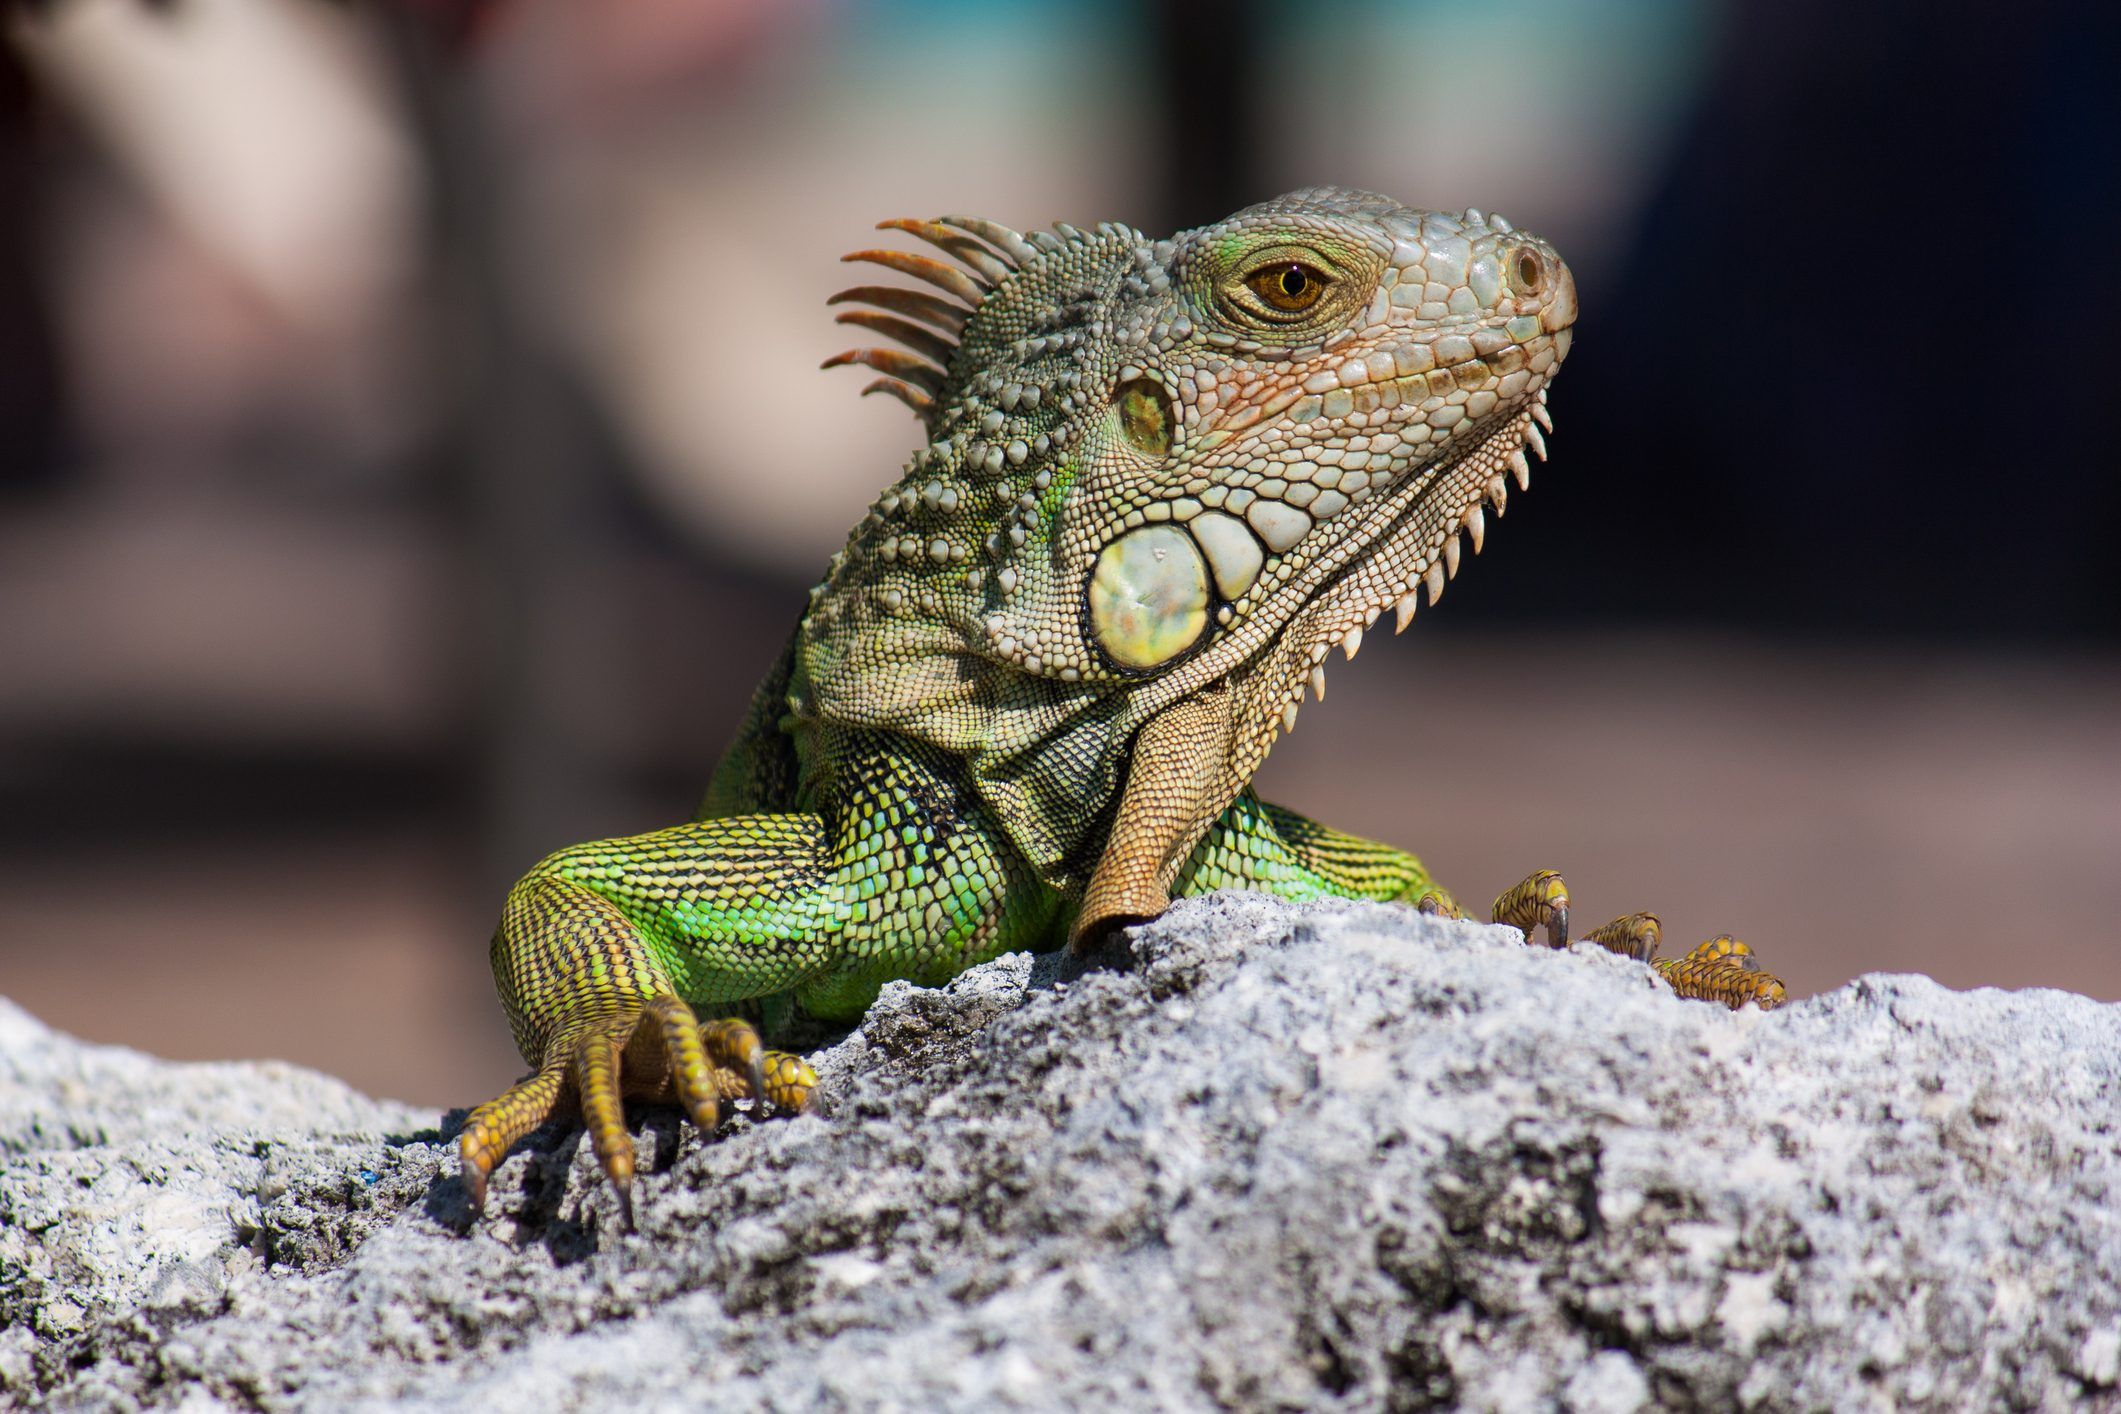 close up of iguana reptile